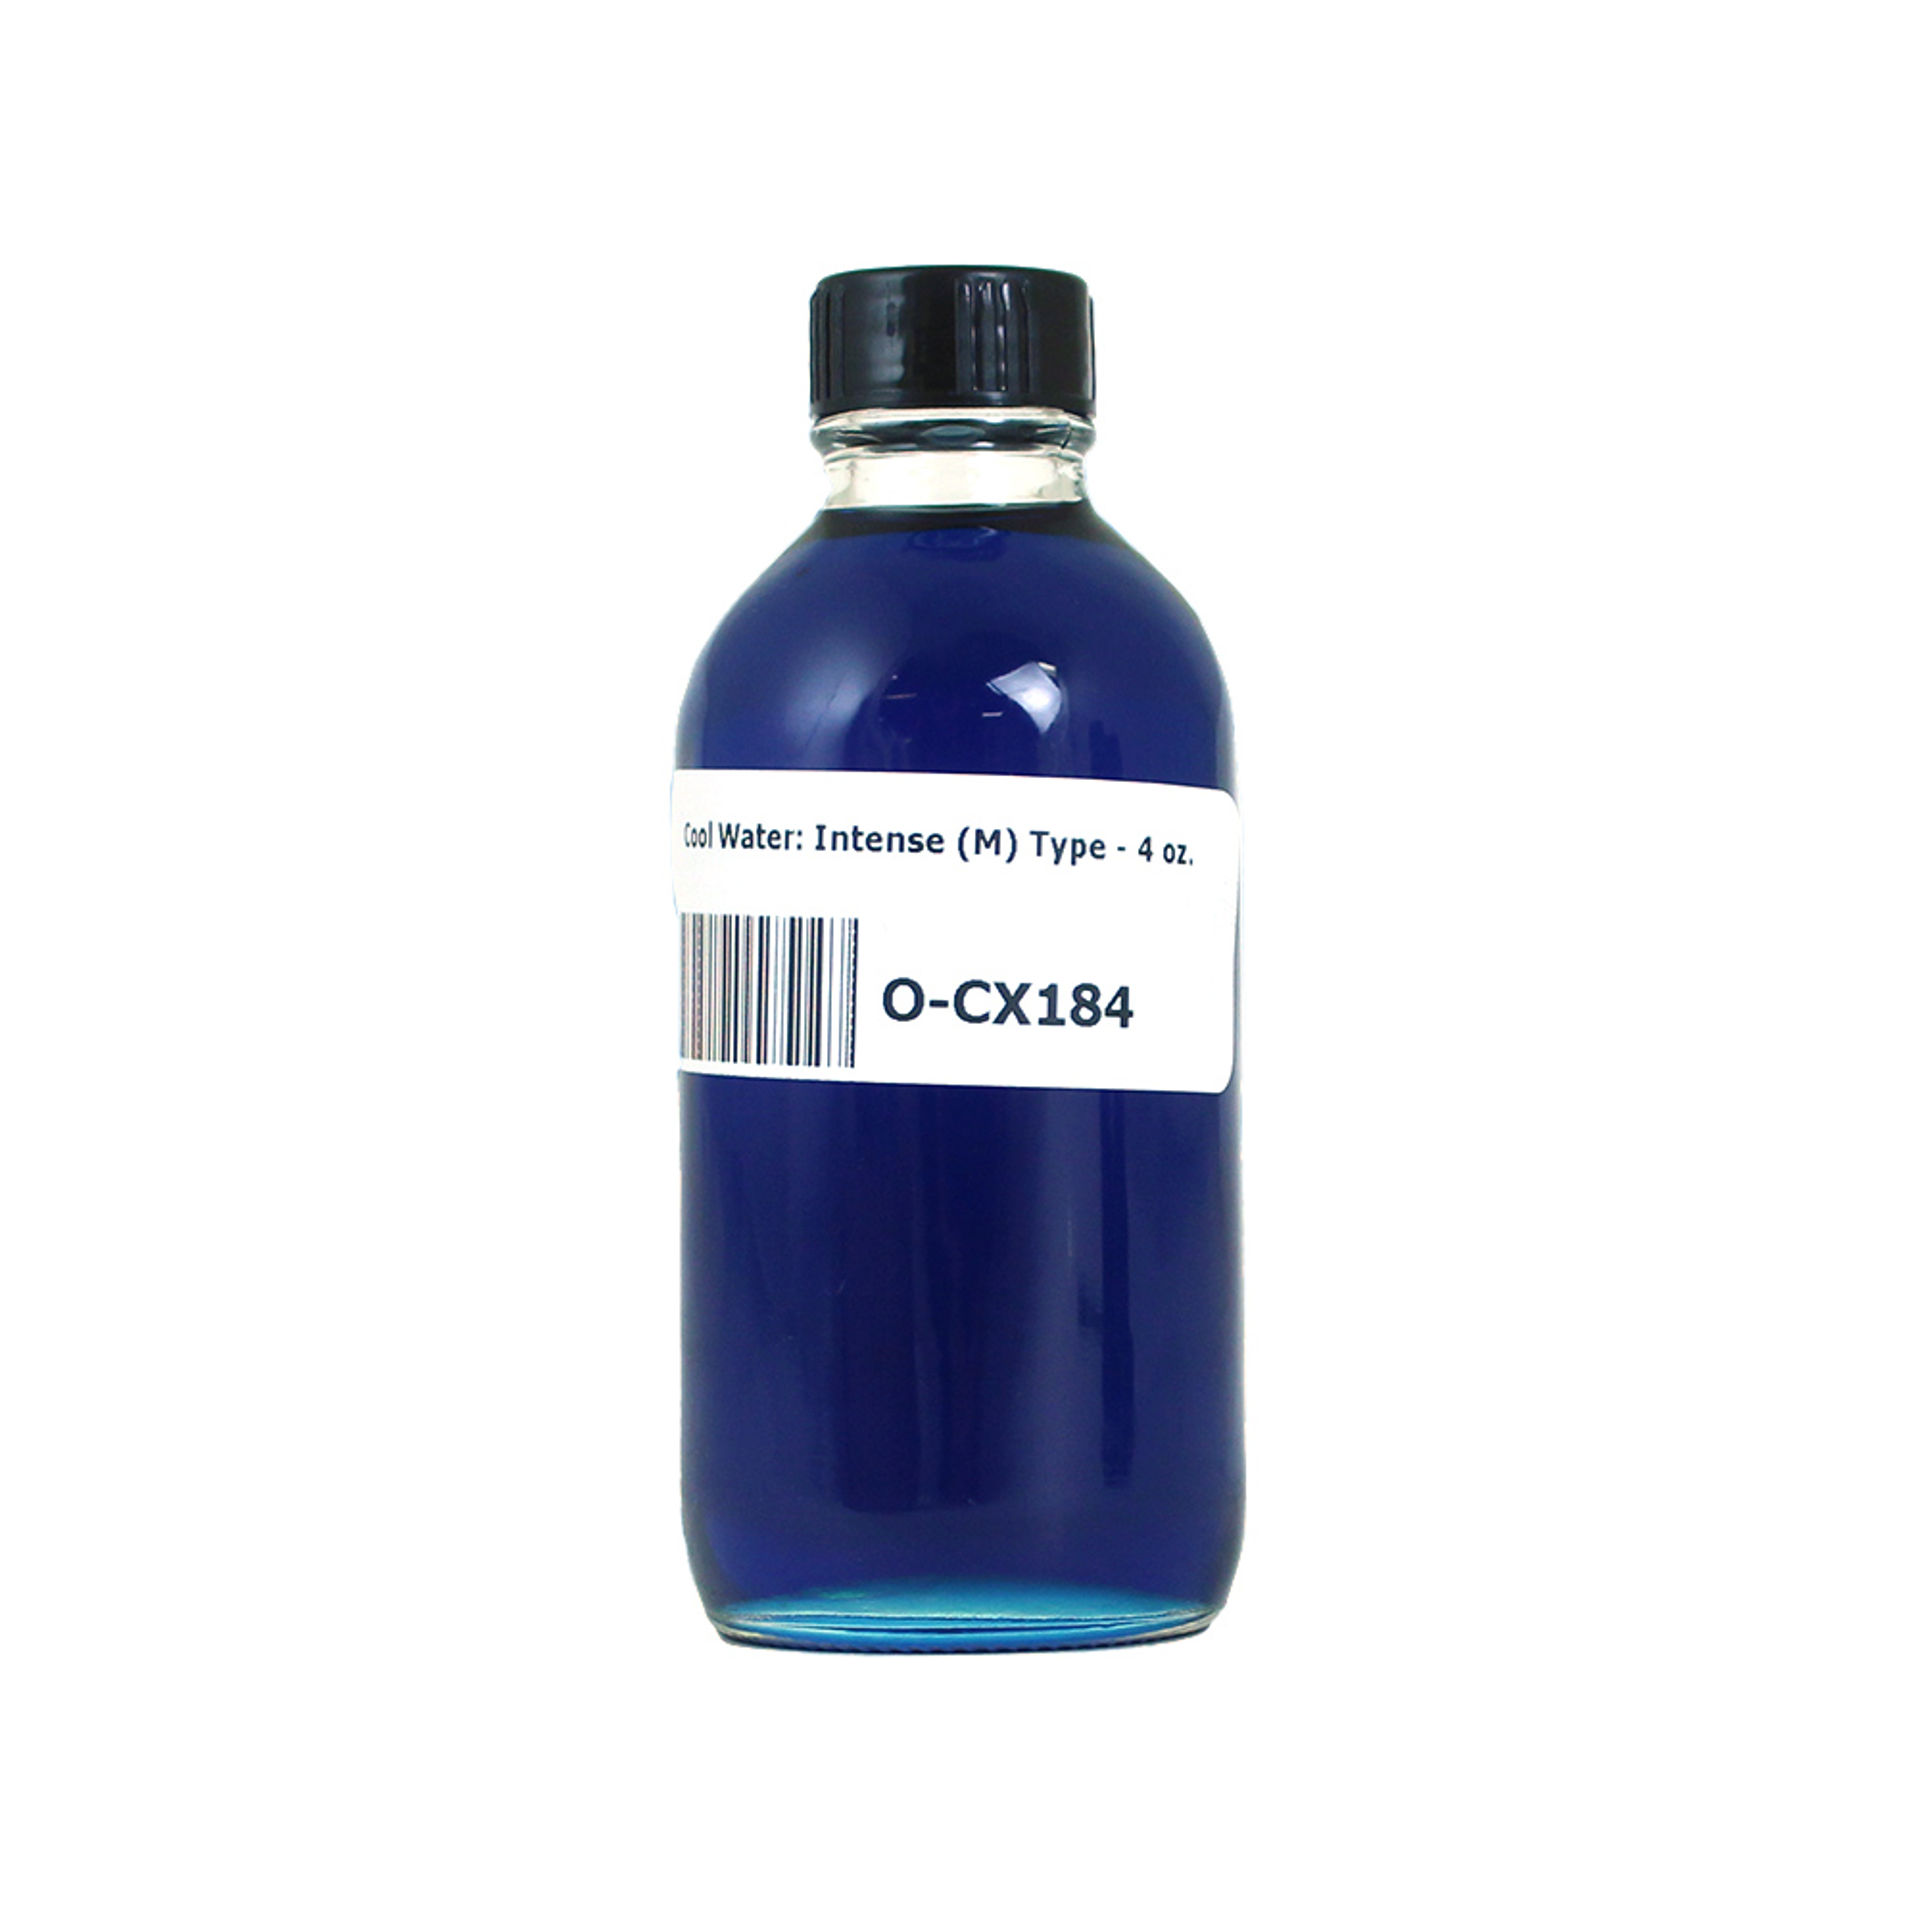 Picture of Cool Water: Intense (M) Type - 4 oz.